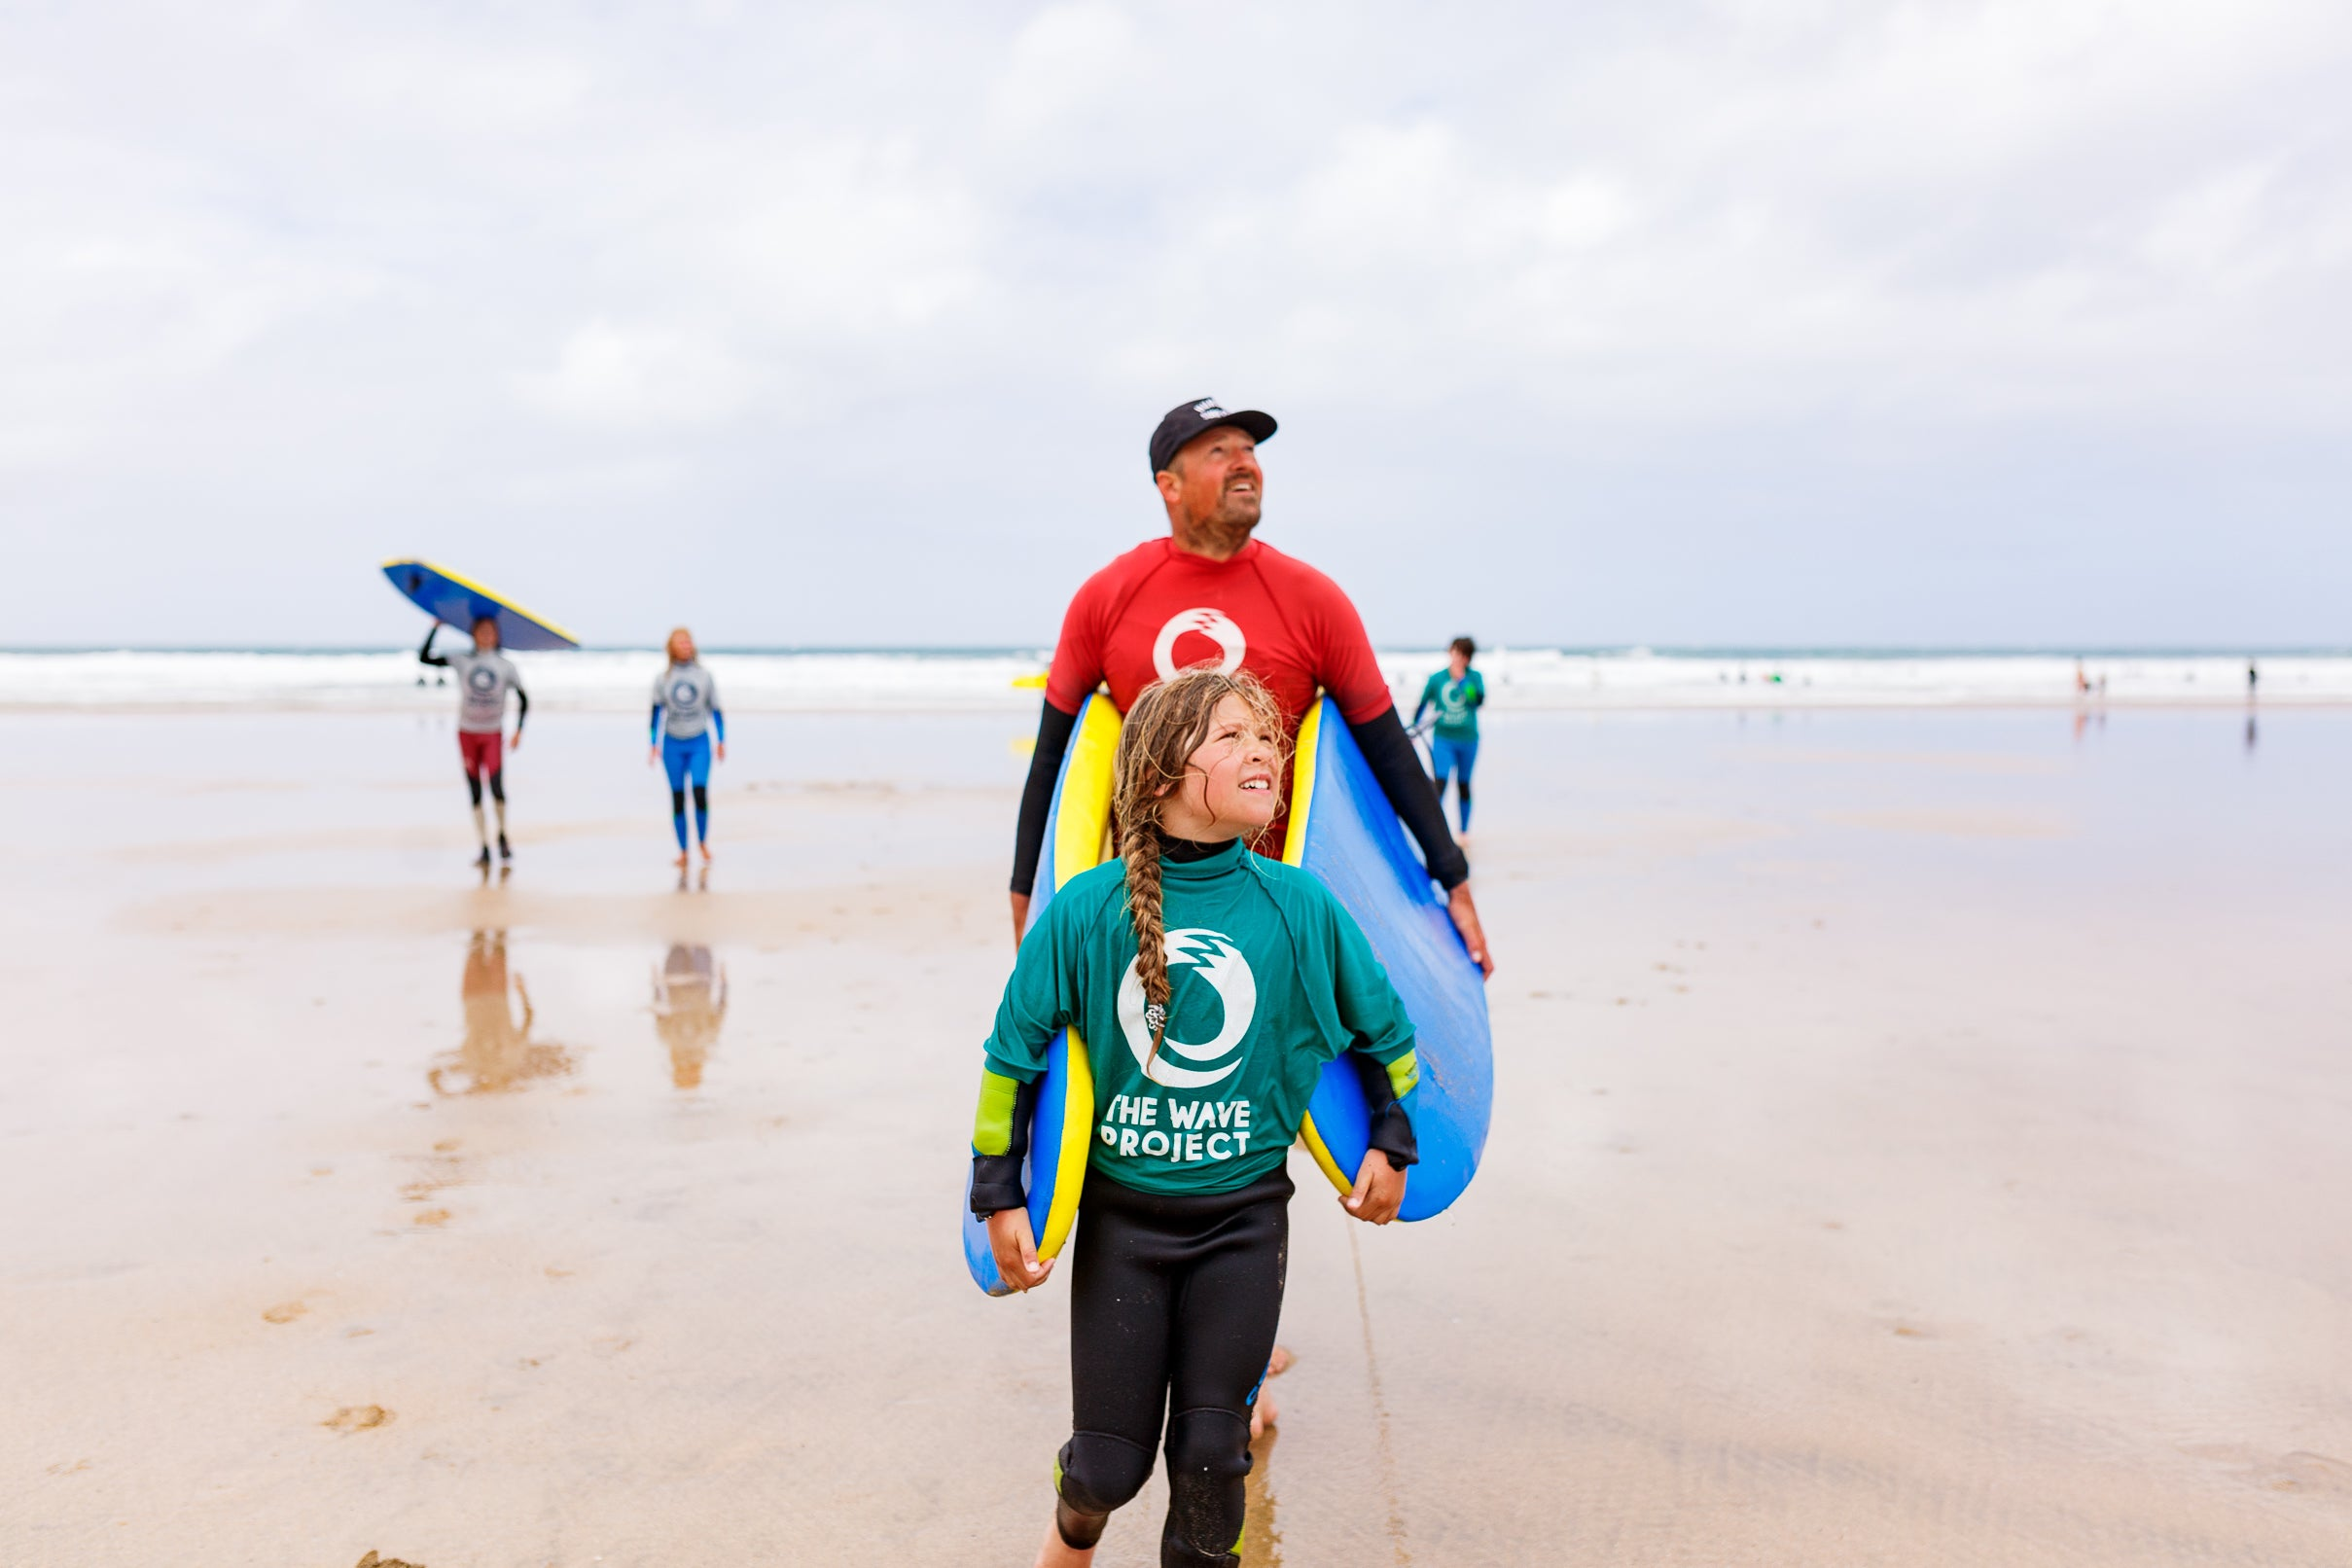 Sam Lamiroy walking a wave project participant up the beach with boards in tow